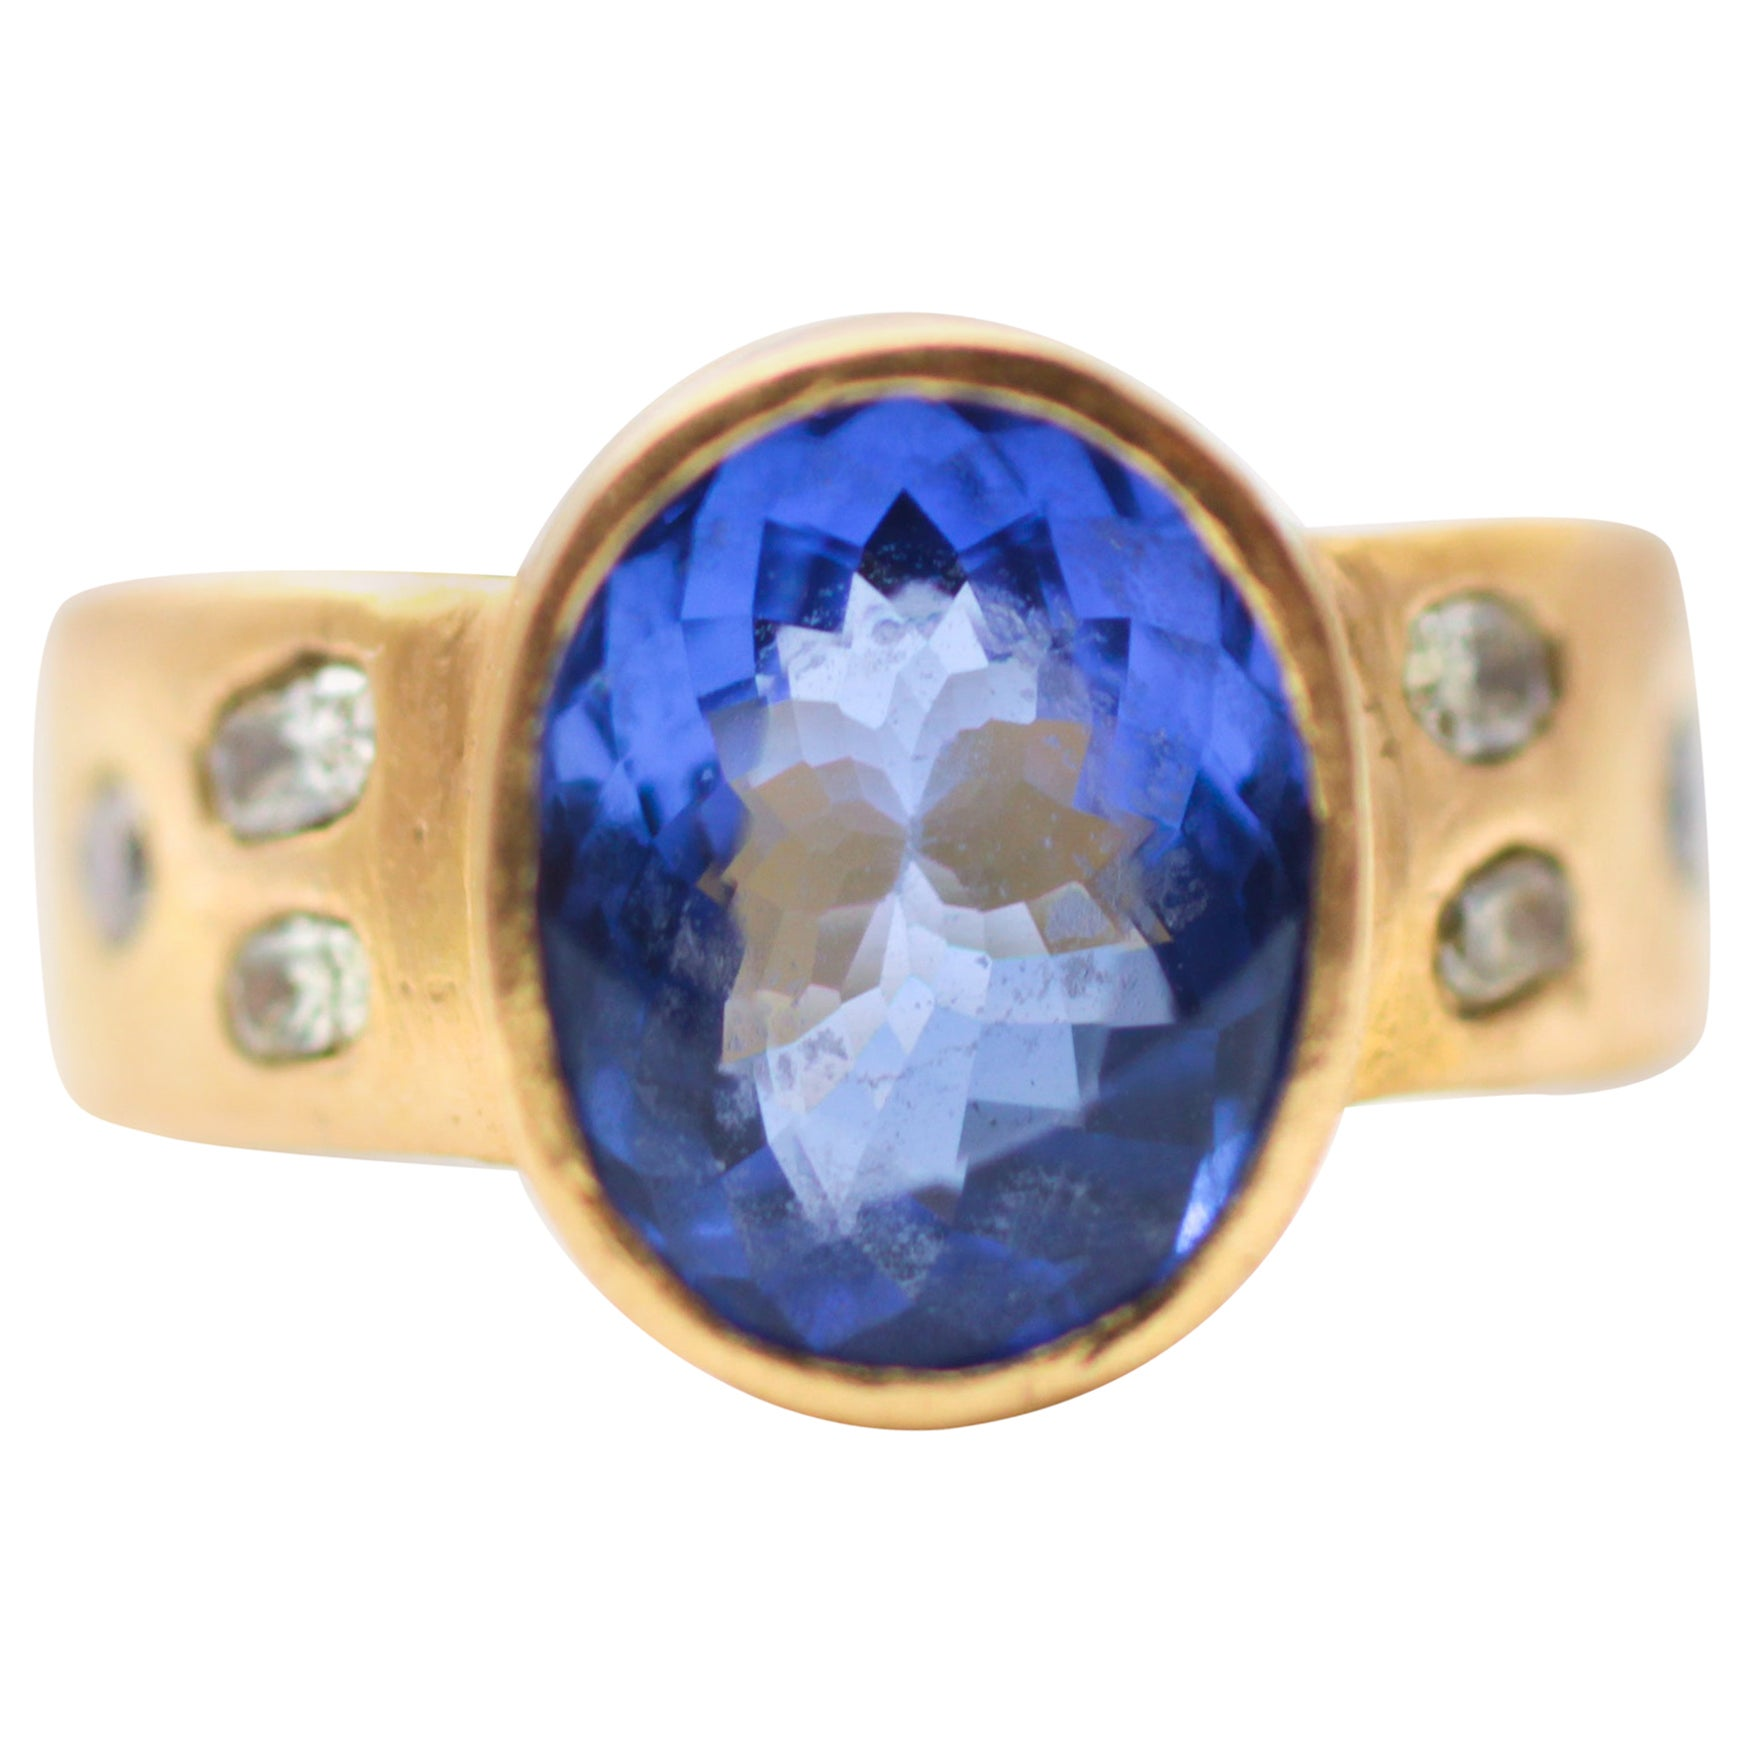 4.6 Carat Tanzanite Solitaire Yellow Diamonds Handmade 22 Karat Gold Bridal Ring